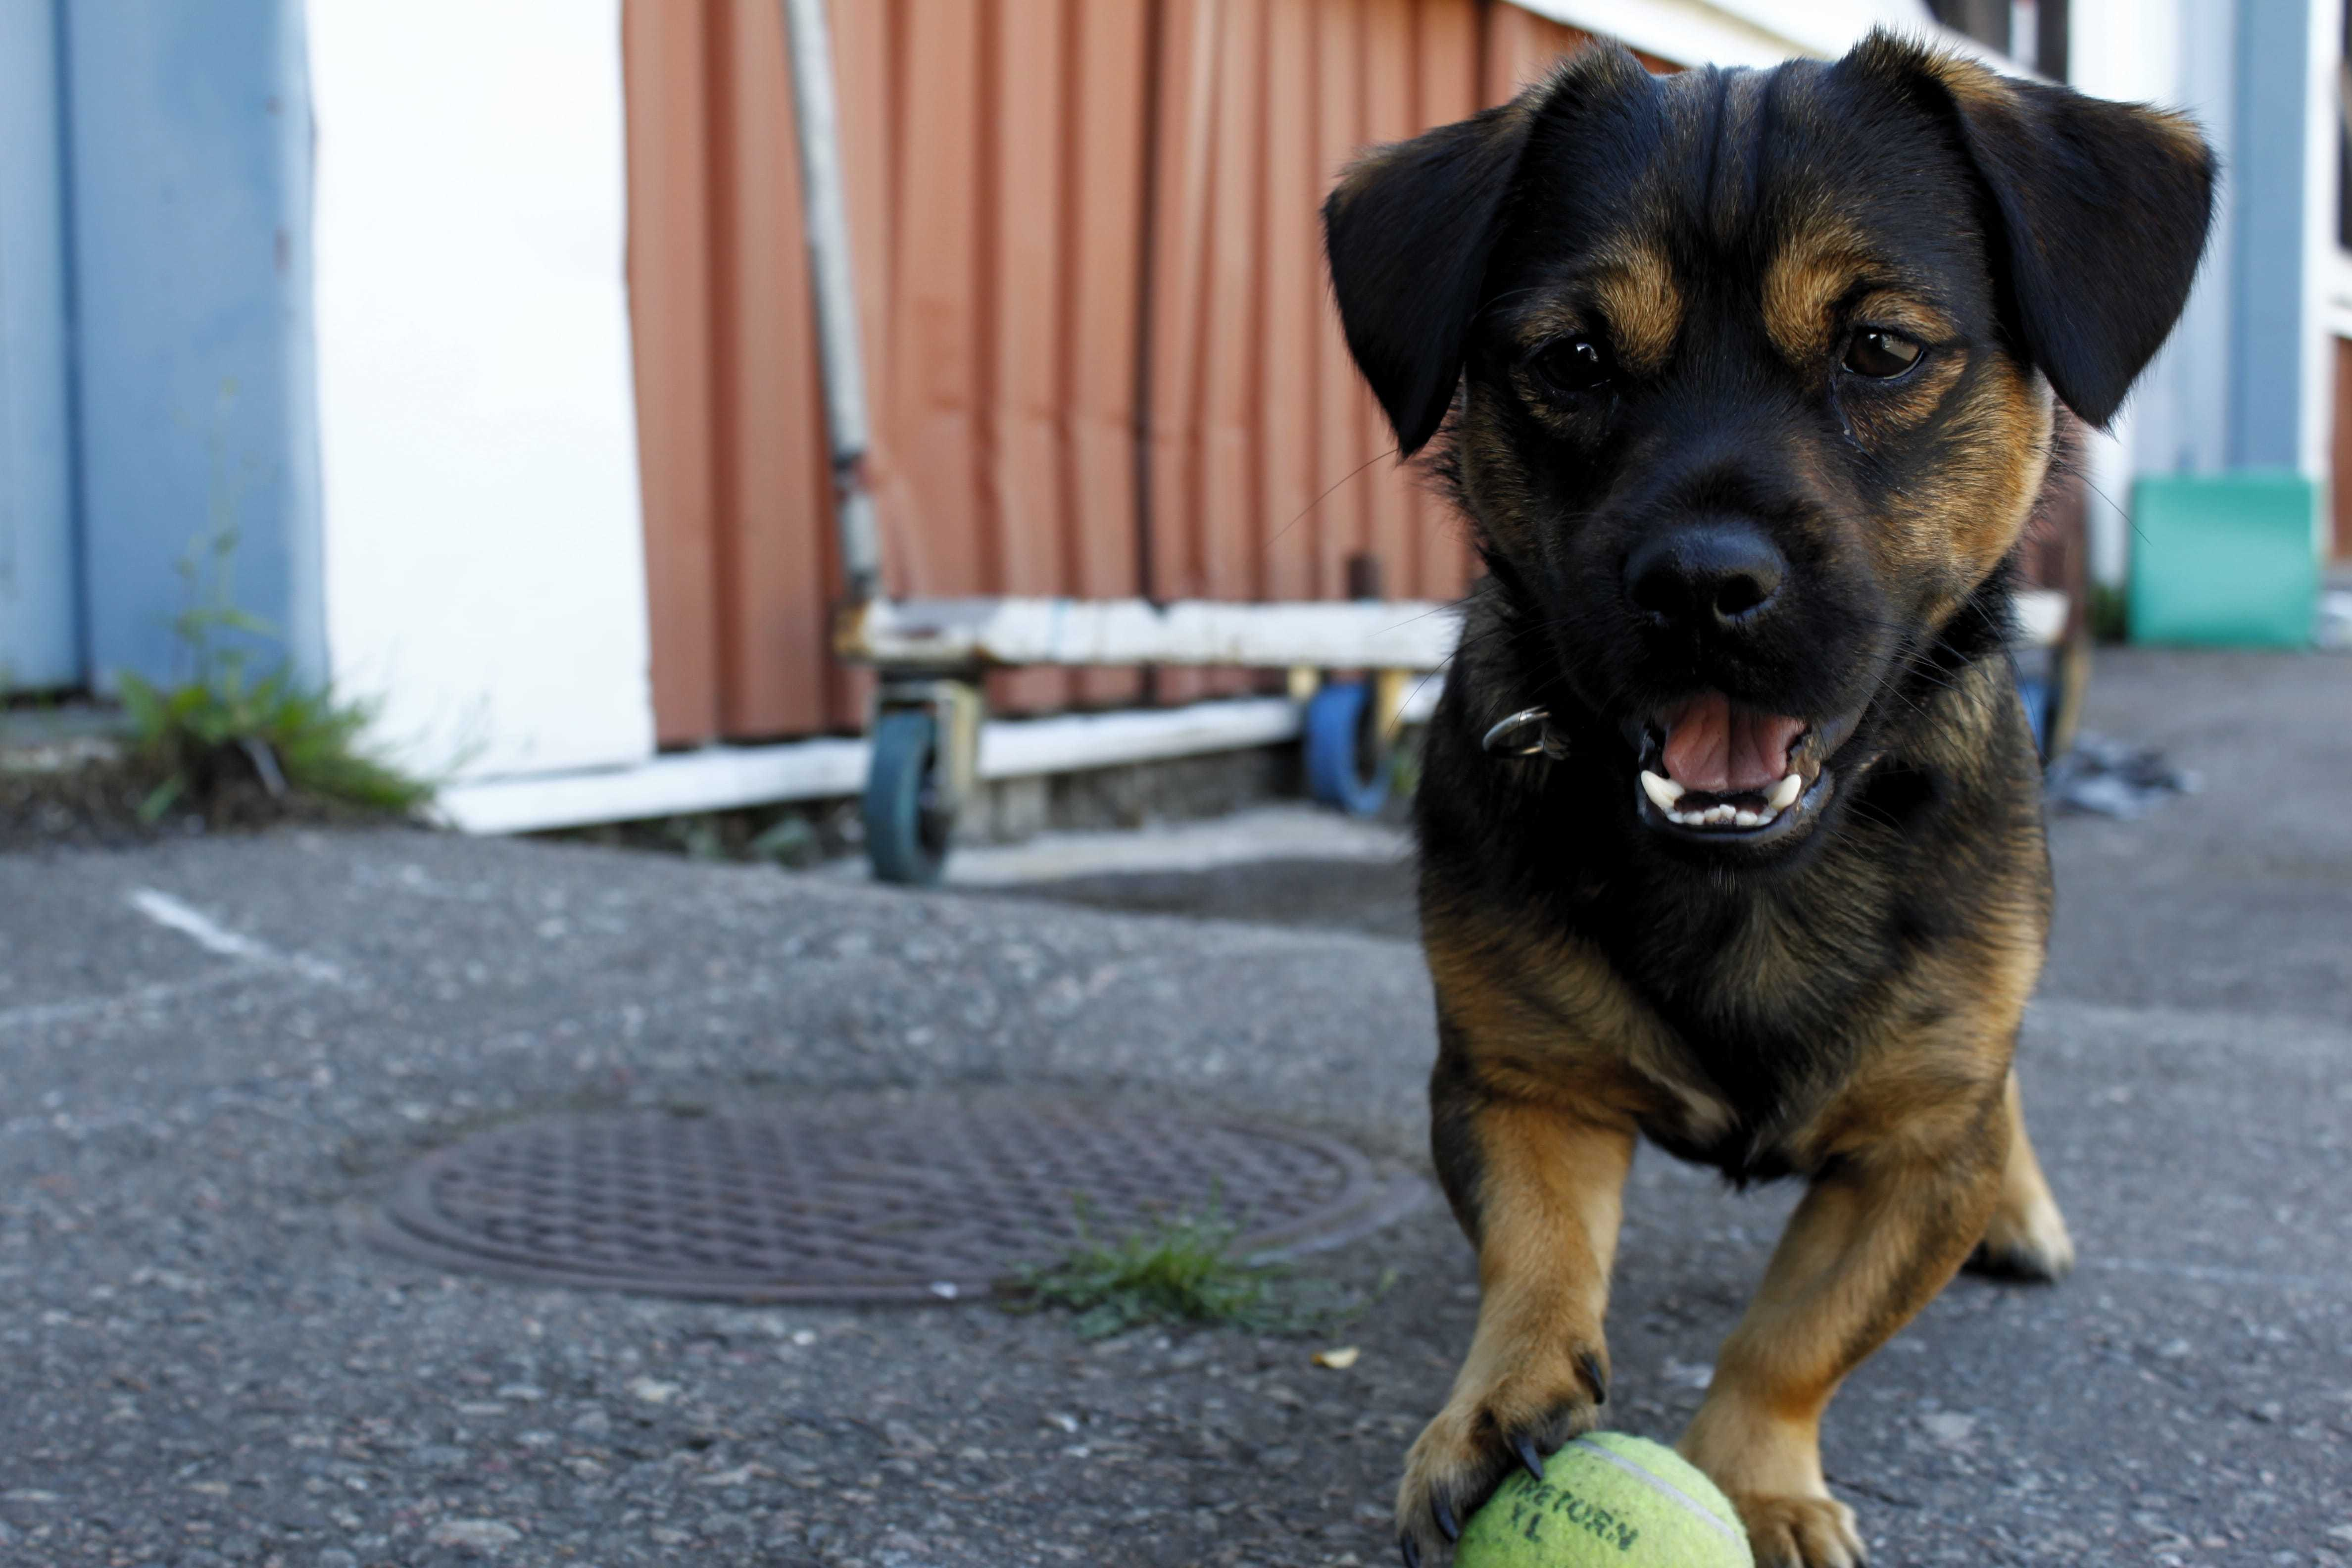 Puppy with kong ball ready to play fetch